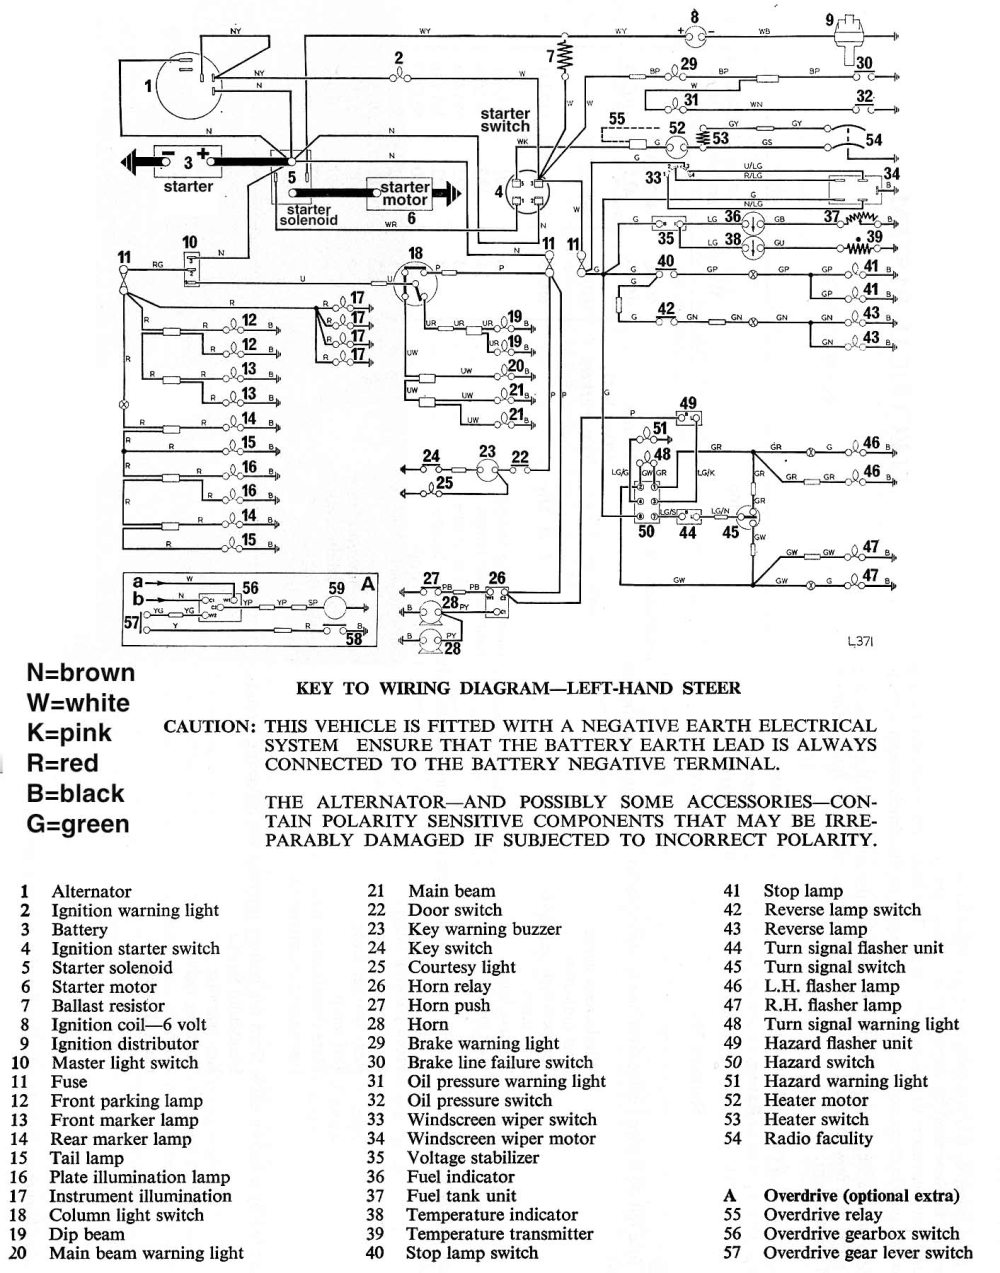 medium resolution of spitfire wire harness diagram wiring diagram longwiring schematics and diagrams triumph spitfire gt6 herald